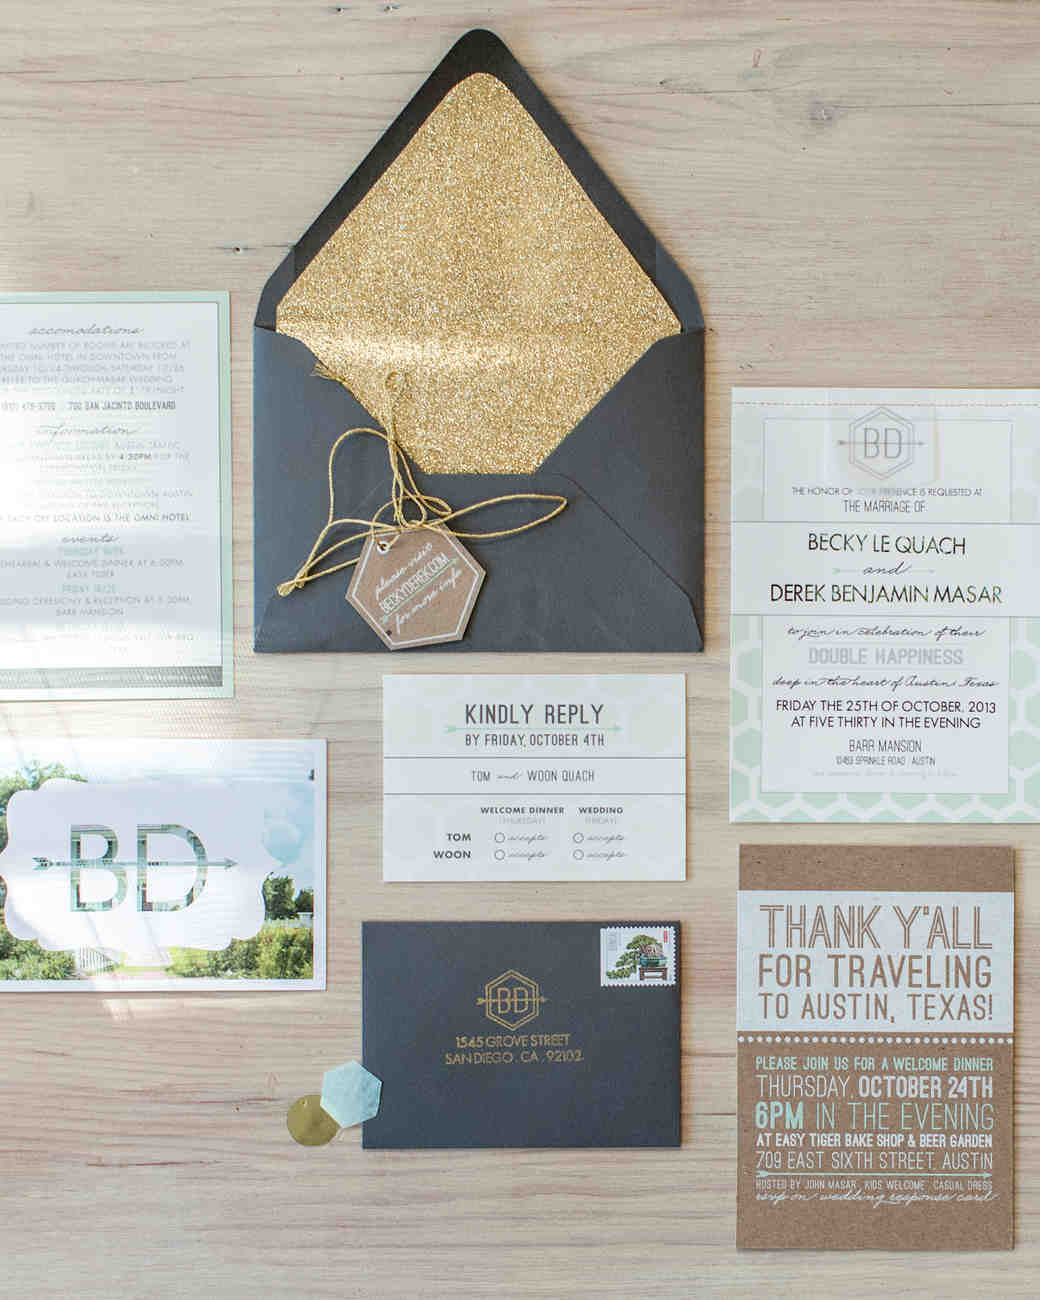 becky-derrick-wedding-stationery-0714.jpg